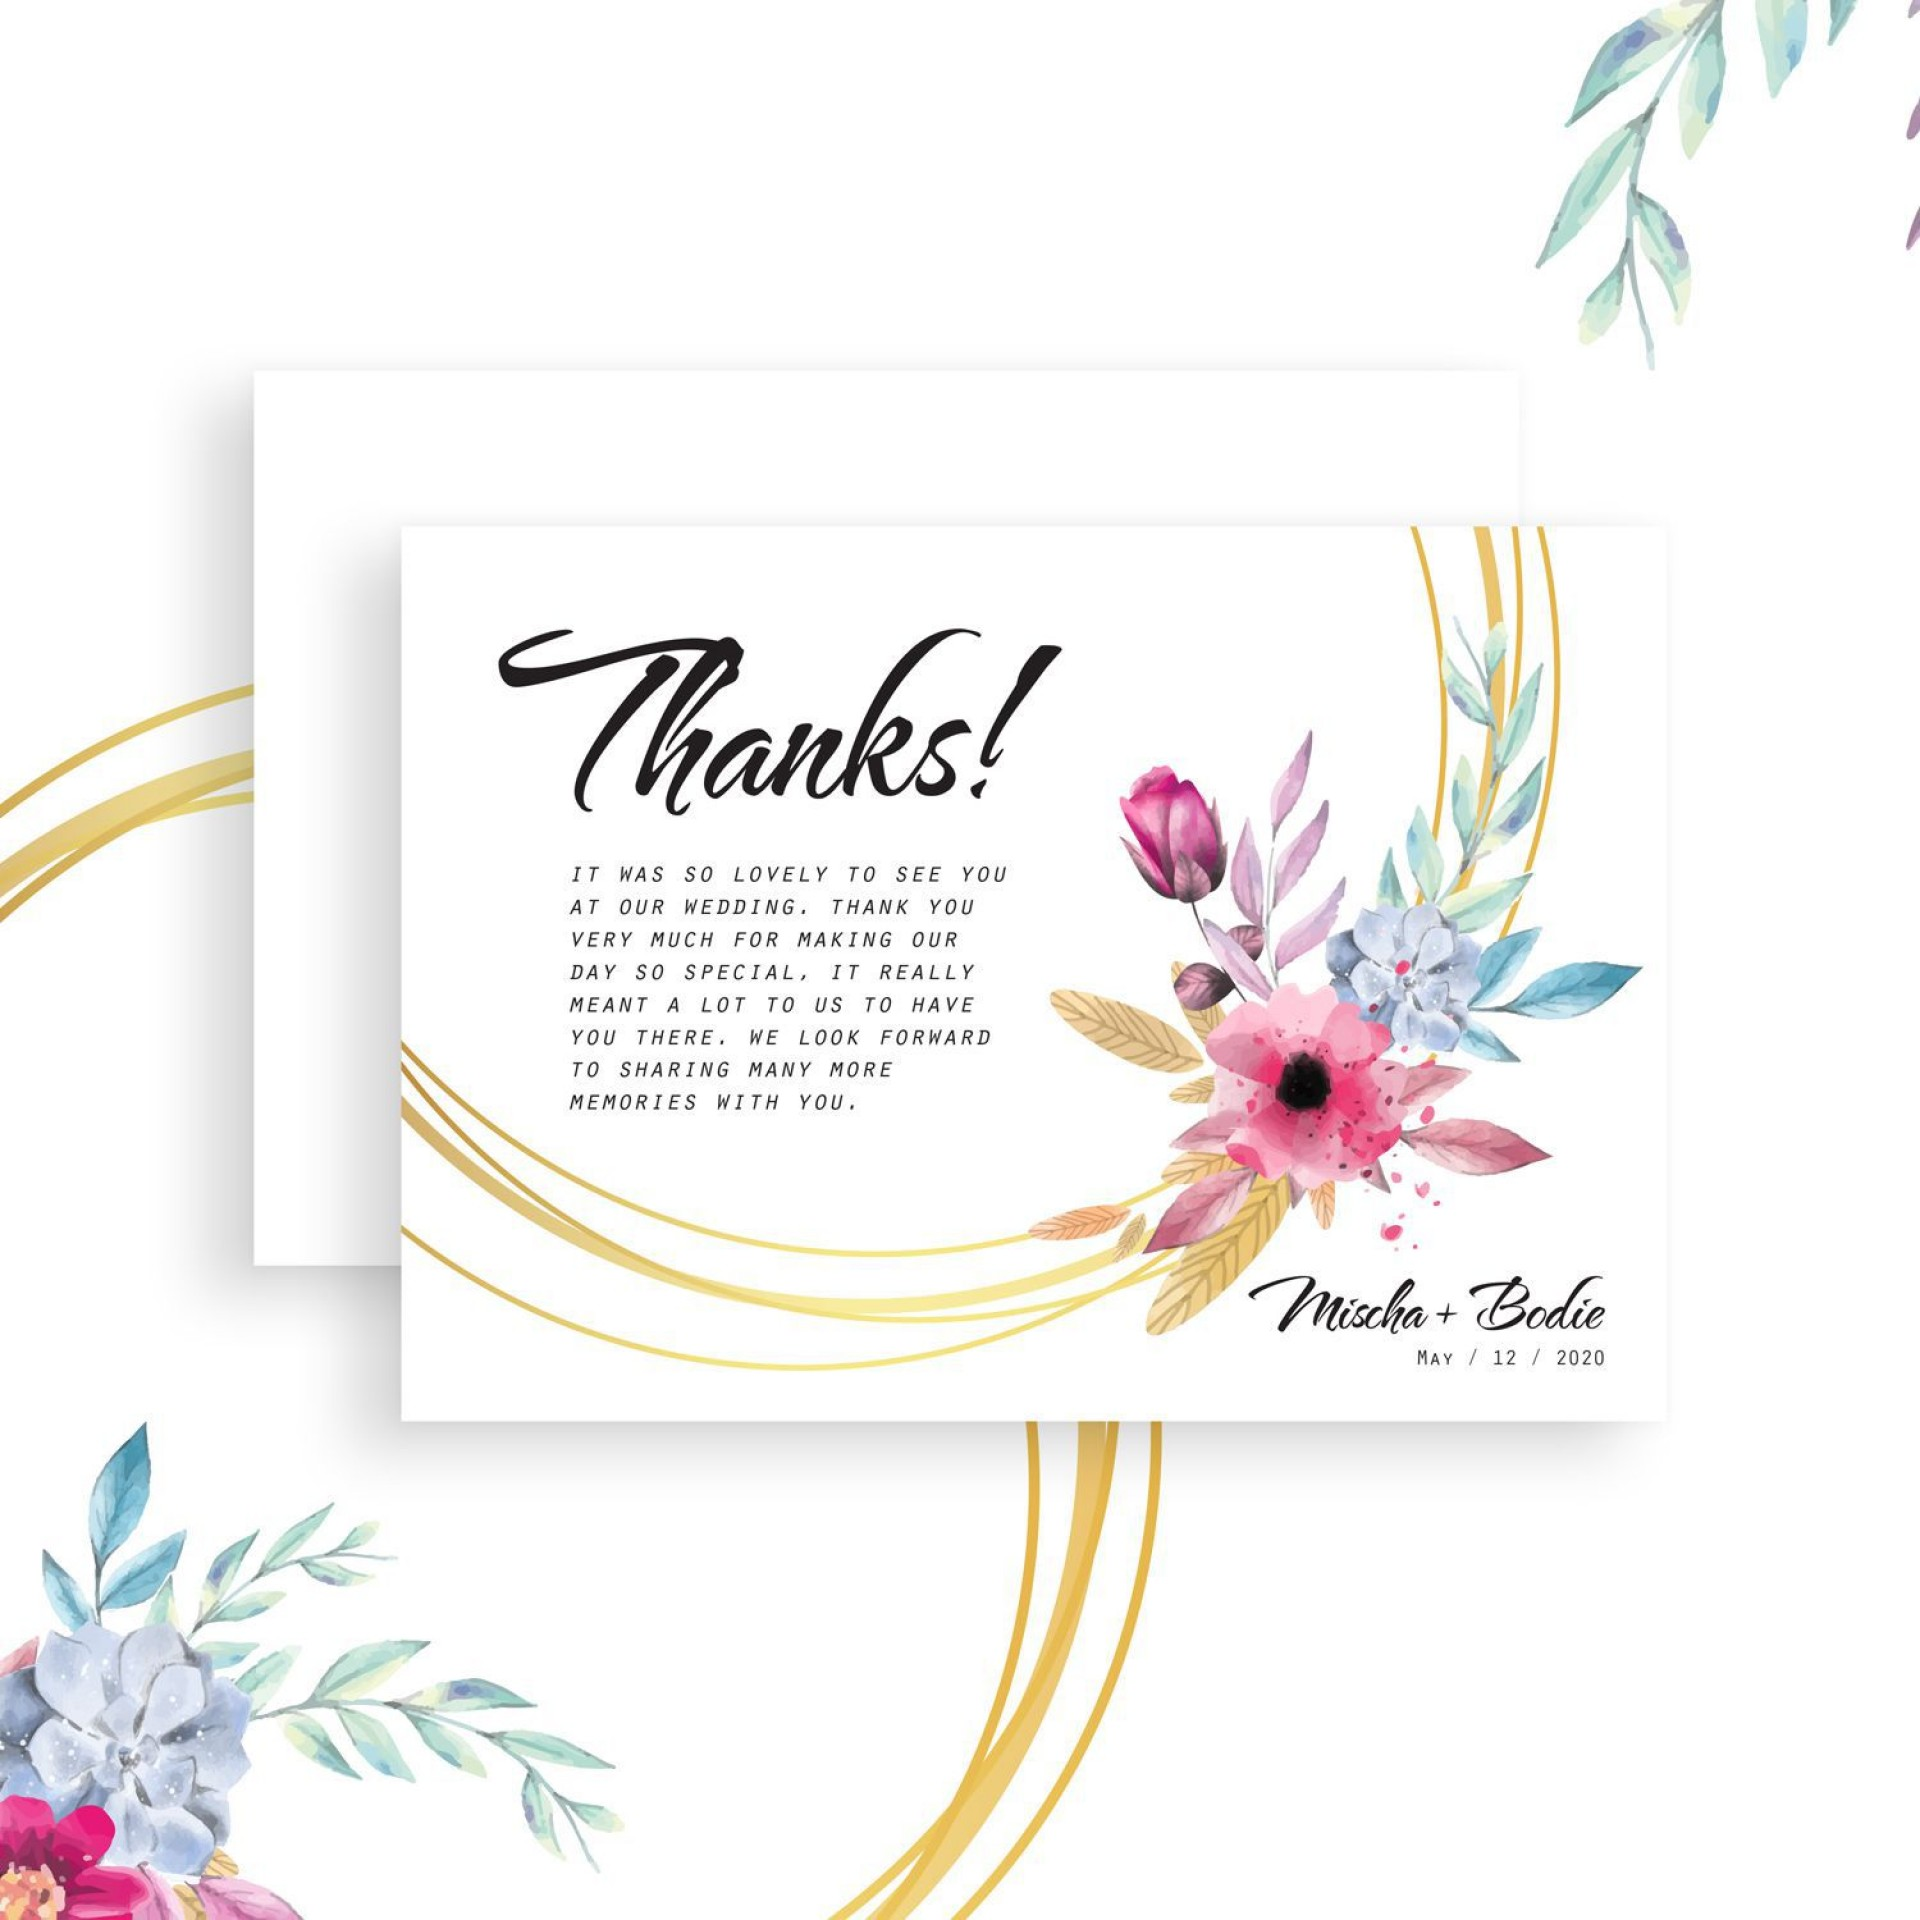 009 Awesome Diy Wedding Thank You Card Template Design  Templates1920